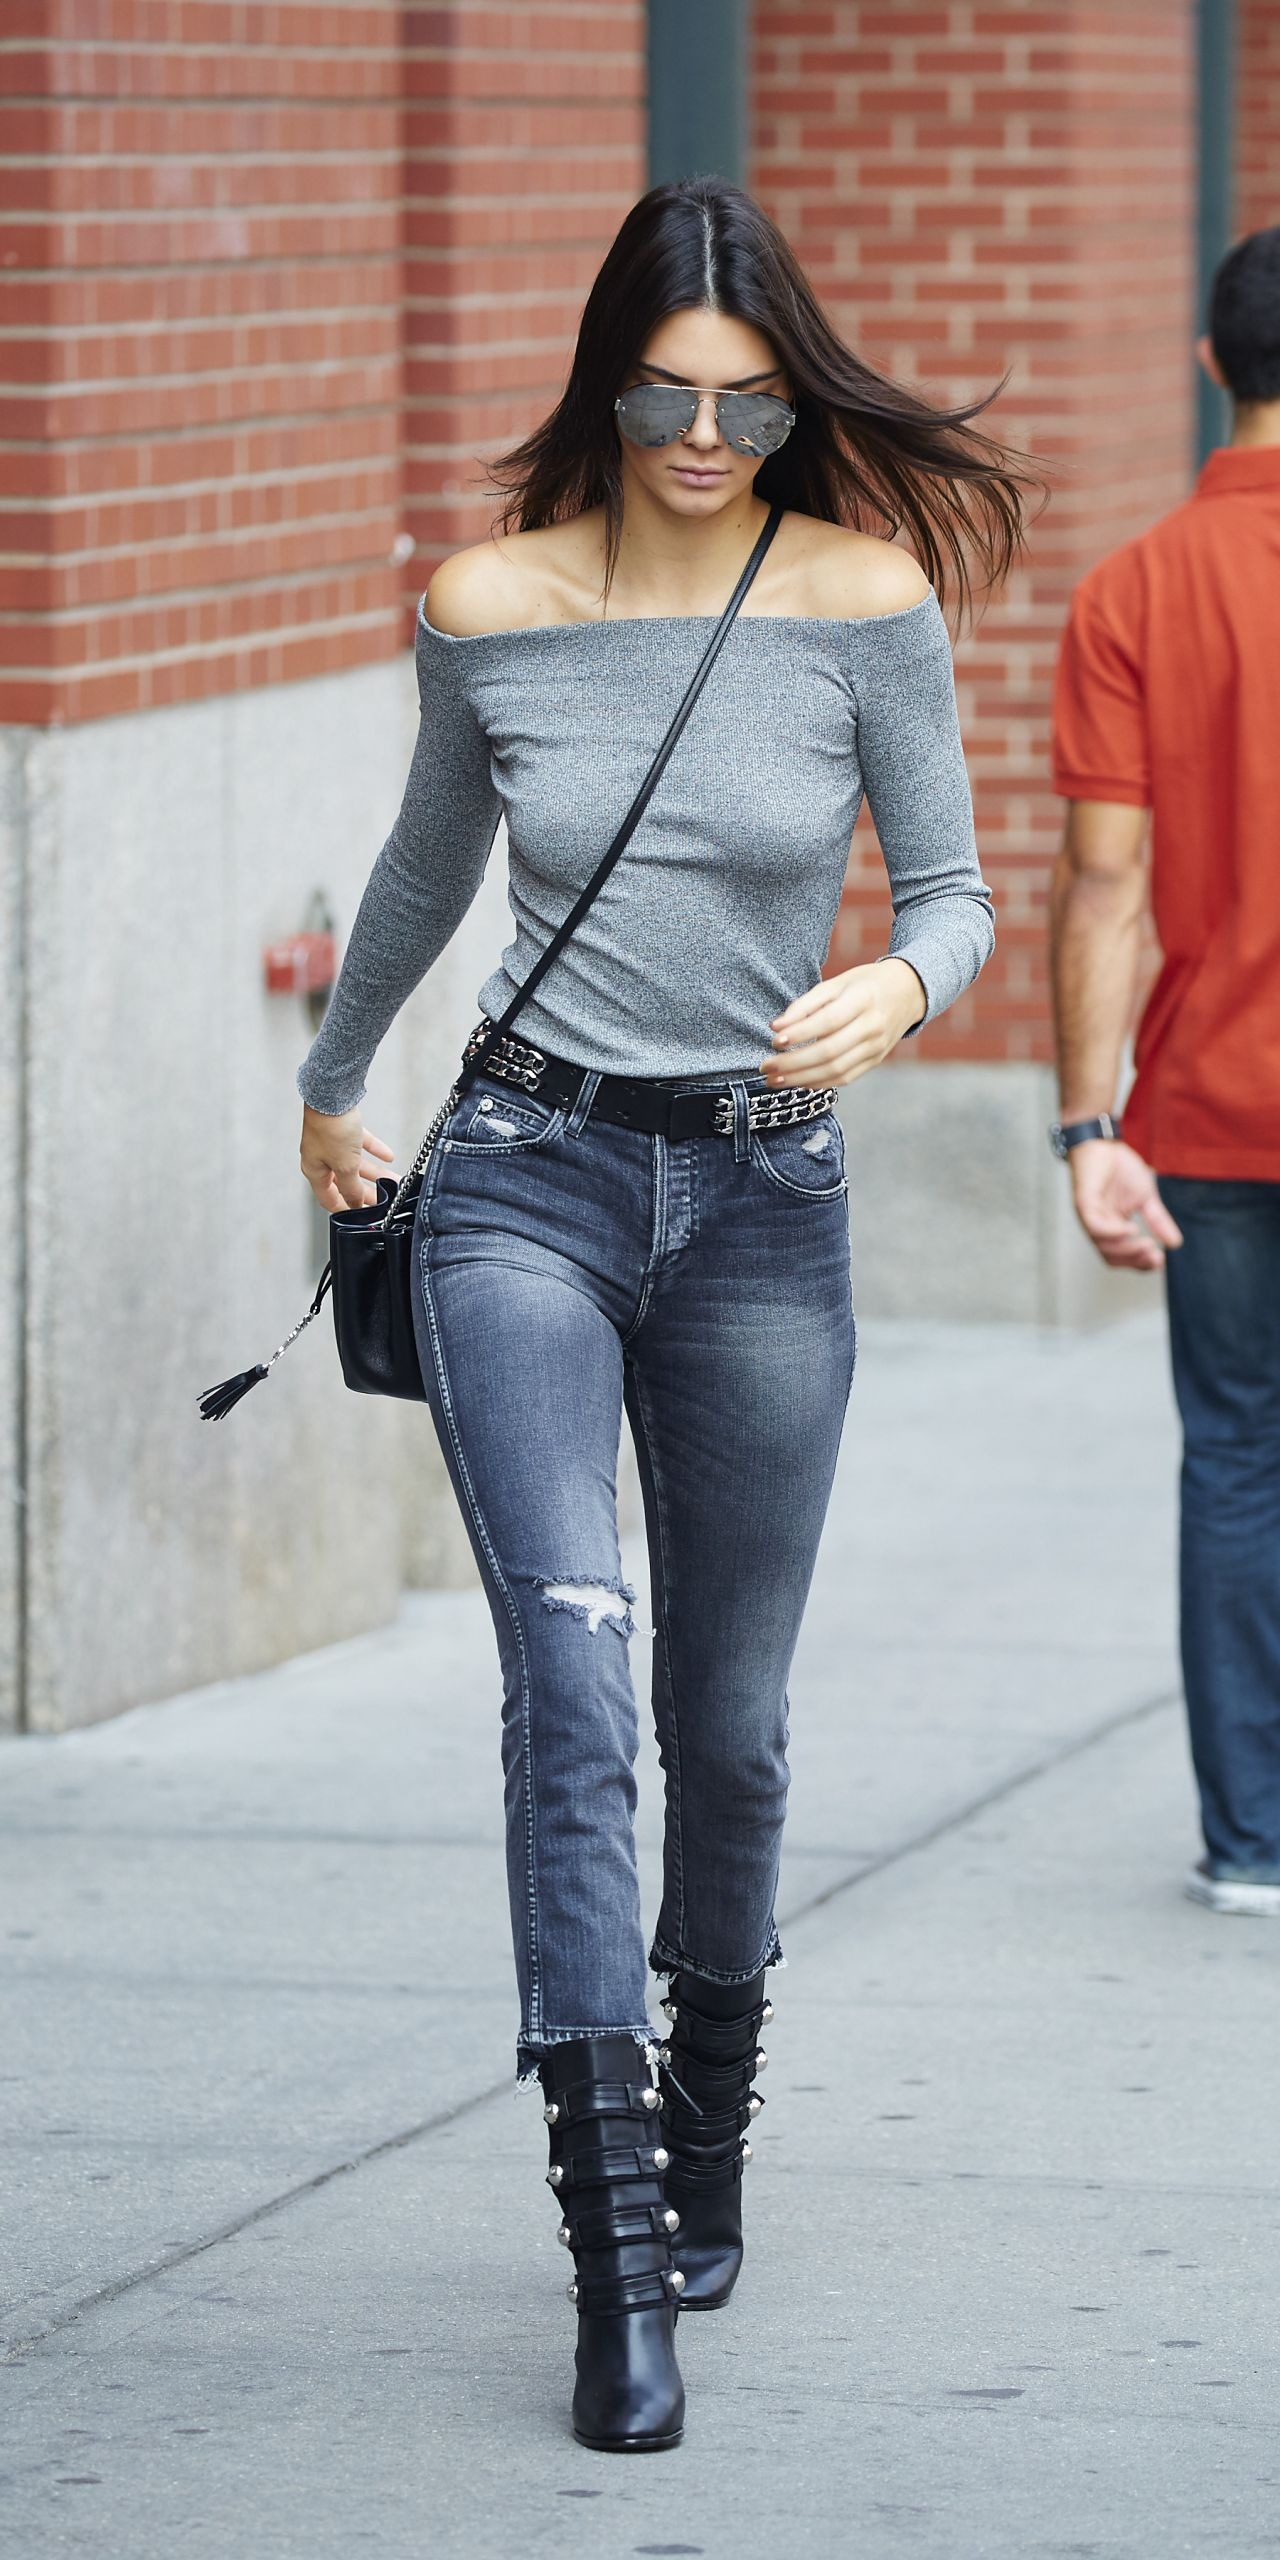 Kendall Jenner Casual Style Leaving Her Apartment In New York City September 2015